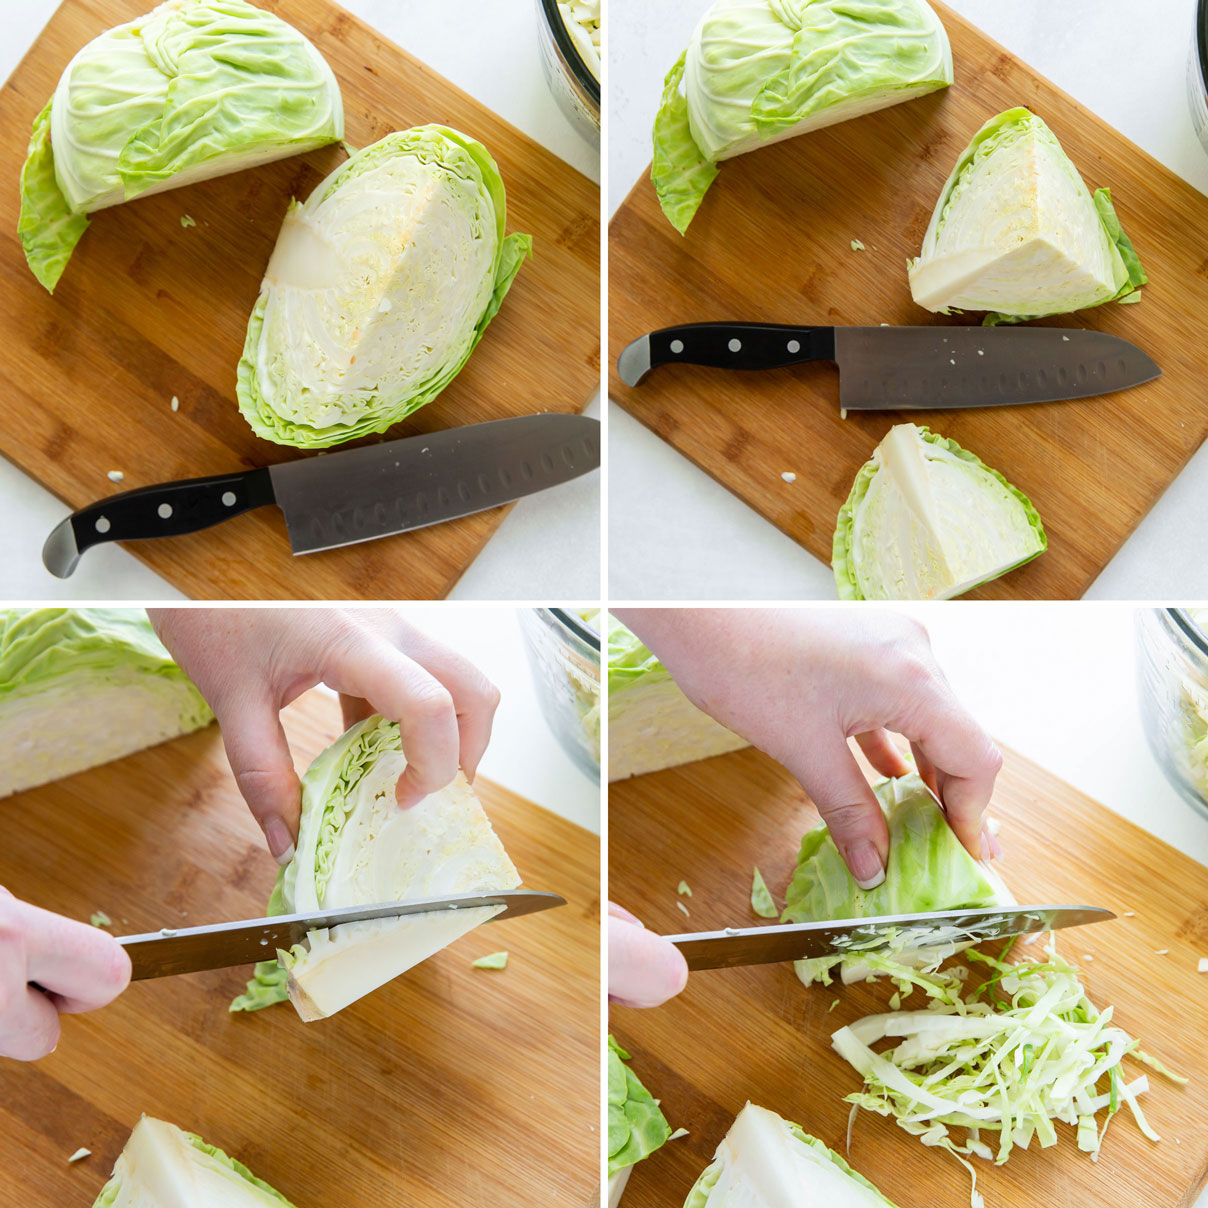 how to shred cabbage step by step photos